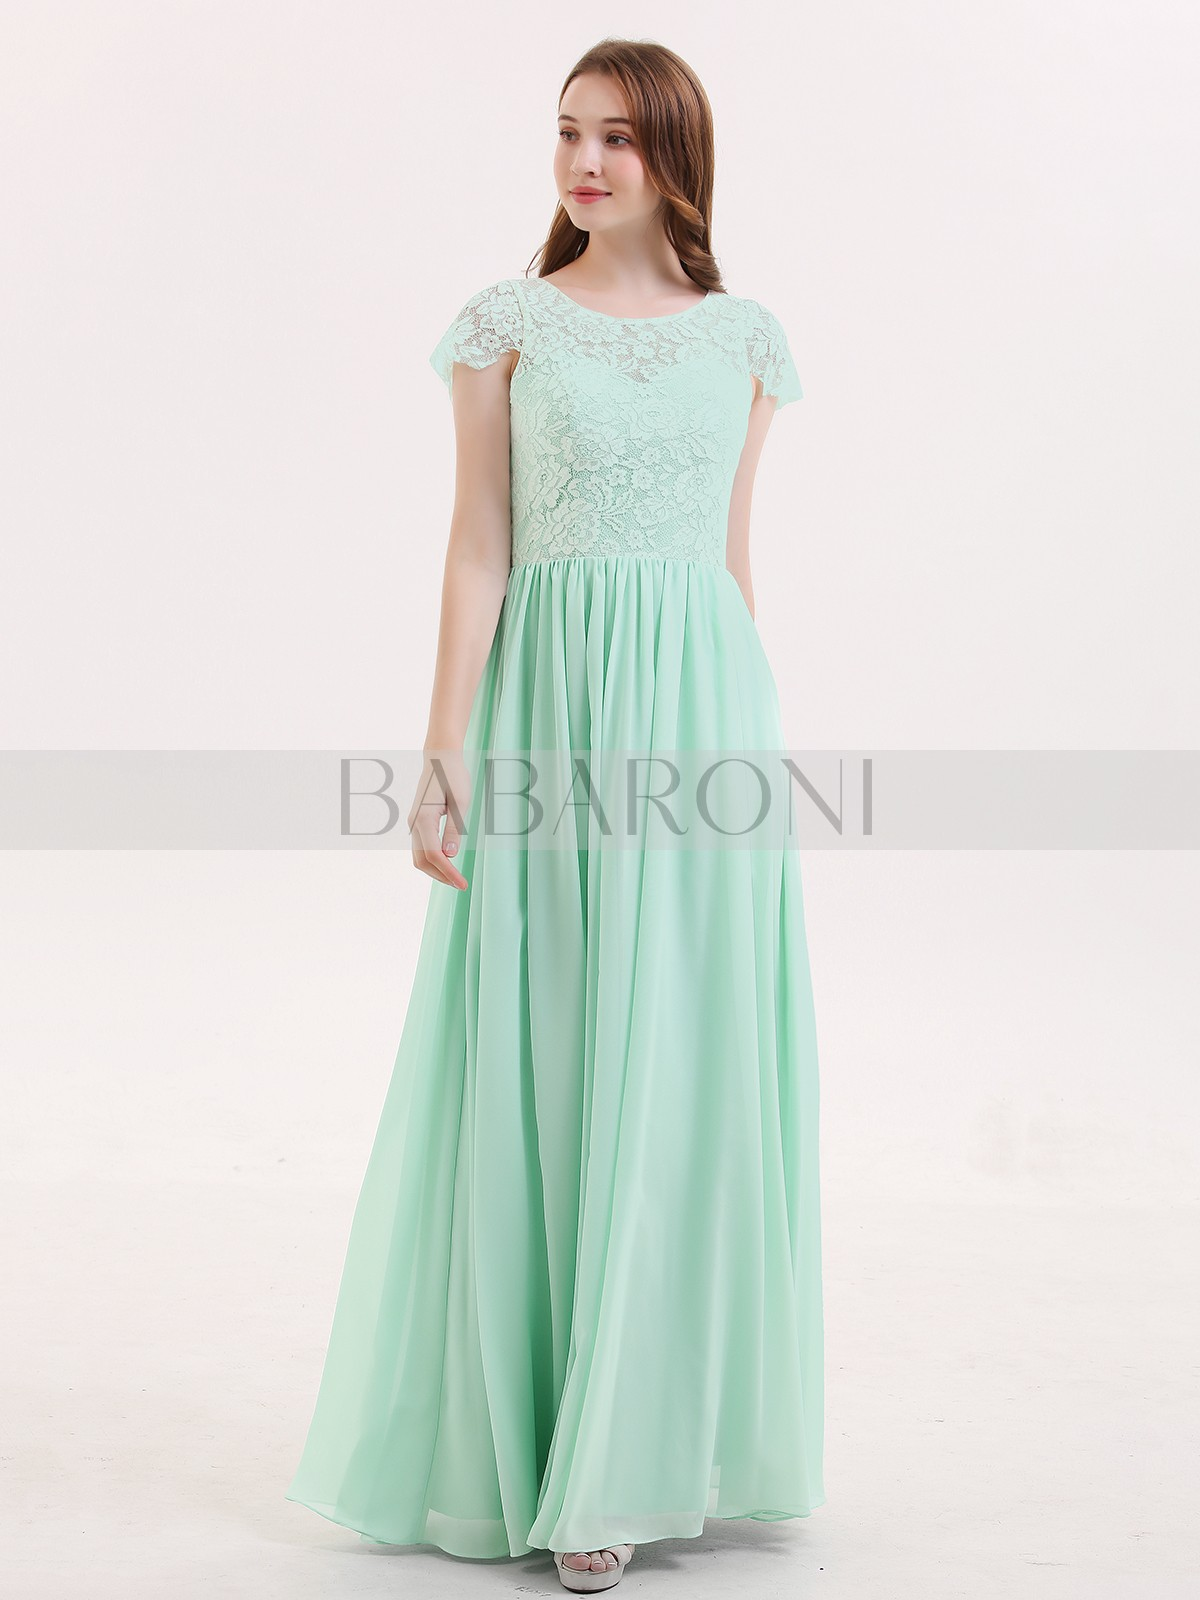 844d7a8f32f A-line Lace Mint Green Zipper Lace Floor-length Scoop Cap Sleeve Bridesmaid  Dresses. Loading zoom